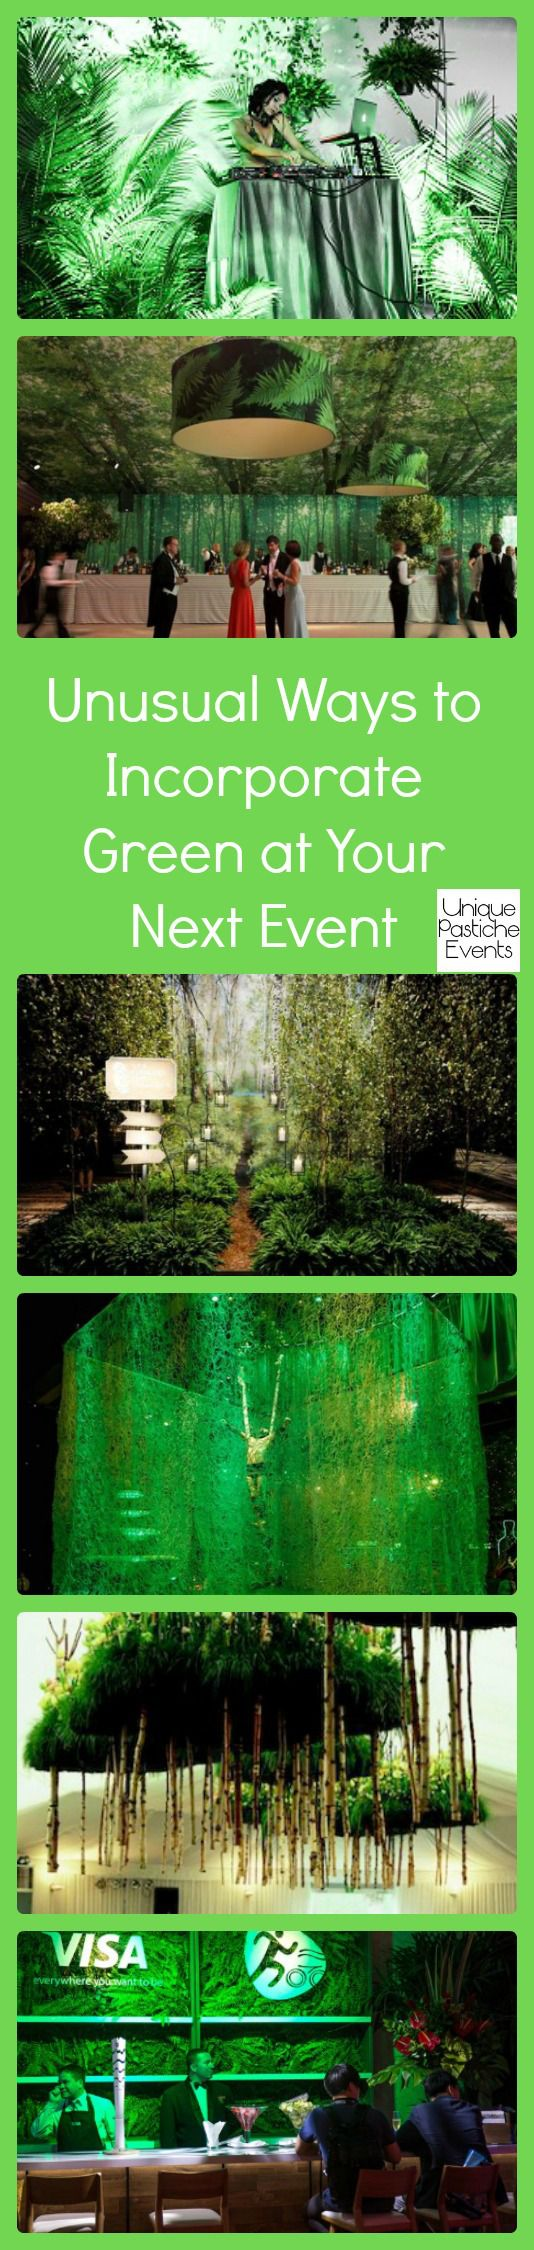 Unusual Ways to Incorporate Green at Your Next Event #IdeaBoard #InspirationBoard